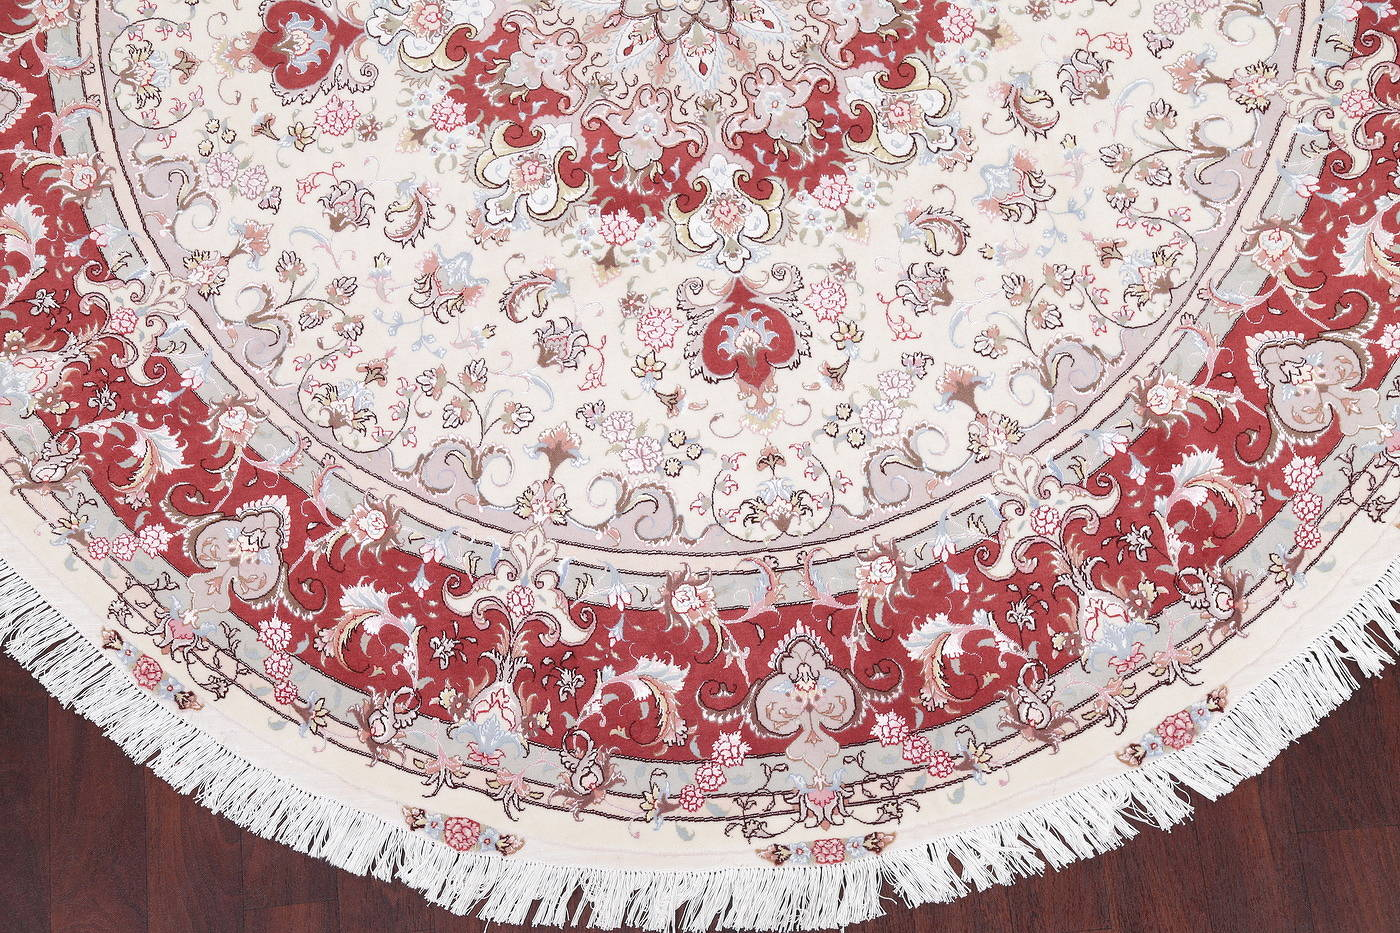 Ivory Floral Tabriz Persian Round Rug 9'x9' image 6